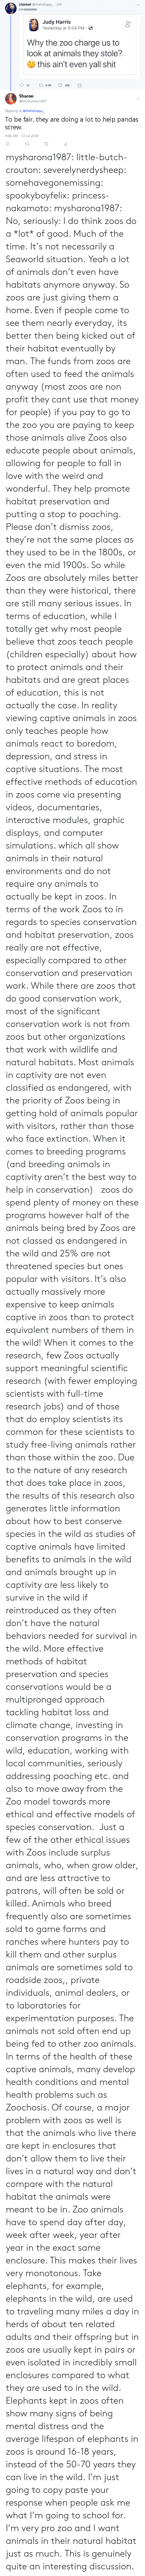 ethics: (Ja)ded @thefathippy 20h  maooo000  Judy Harris  Yesterday at 5:04 PM.  0+  Why the zoo charge us to  look at animals they stole?  this ain't even yall shit  Sharon  @MySharona1987  Replying to @thefathippy  To be fair, they are doing a lot to help pandas  screw.  4:56 AM- 11 Jul 2018 mysharona1987:  little-butch-crouton: severelynerdysheep:  somehavegonemissing:  spookyboyfelix:  princess-nakamoto:   mysharona1987:   No, seriously: I do think zoos do a *lot* of good. Much of the time. It's not necessarily a Seaworld situation.   Yeah a lot of animals don't even have habitats anymore anyway. So zoos are just giving them a home. Even if people come to see them nearly everyday, its better then being kicked out of their habitat eventually by man.   The funds from zoos are often used to feed the animals anyway (most zoos are non profit they cant use that money for people) if you pay to go to the zoo you are paying to keep those animals alive  Zoos also educate people about animals, allowing for people to fall in love with the weird and wonderful.  They help promote habitat preservation and putting a stop to poaching. Please don't dismiss zoos, they're not the same places as they used to be in the 1800s, or even the mid 1900s.   So while Zoos are absolutely miles better than they were historical, there are still many serious issues. In terms of education, while I totally get why most people believe that zoos teach people (children especially) about how to protect animals and their habitats and are great places of education, this is not actually the case. In reality viewing captive animals in zoos only teaches people how animals react to boredom, depression, and stress in captive situations. The most effective methods of education in zoos come via presenting videos, documentaries, interactive modules, graphic displays, and computer simulations. which all show animals in their natural environments and do not require any animals to actually be kept in zoos. In terms of the work Zoos to in regards to species conservation and habitat preservation, zoos really are not effective, especially compared to other conservation and preservation work. While there are zoos that do good conservation work, most of the significant conservation work is not from zoos but other organizations that work with wildlife and natural habitats. Most animals in captivity are not even classified as endangered, with the priority of Zoos being in getting hold of animals popular with visitors, rather than those who face extinction. When it comes to breeding programs (and breeding animals in captivity aren't the best way to help in conservation)   zoos do spend plenty of money on these programs however half of the animals being bred by Zoos are not classed as endangered in the wild and 25% are not threatened species but ones popular with visitors. It's also actually massively more expensive to keep animals captive in zoos than to protect equivalent numbers of them in the wild! When it comes to the research, few Zoos actually support meaningful scientific research (with fewer employing scientists with full-time research jobs) and of those that do employ scientists its common for these scientists to study free-living animals rather than those within the zoo. Due to the nature of any research that does take place in zoos, the results of this research also generates little information about how to best conserve species in the wild as studies of captive animals have limited benefits to animals in the wild and animals brought up in captivity are less likely to survive in the wild if reintroduced as they often don't have the natural behaviors needed for survival in the wild. More effective methods of habitat preservation and species conservations would be a multipronged approach tackling habitat loss and climate change, investing in conservation programs in the wild, education, working with local communities, seriously addressing poaching etc. and also to move away from the Zoo model towards more ethical and effective models of species conservation.  Just a few of the other ethical issues with Zoos include surplus animals, who, when grow older, and are less attractive to patrons, will often be sold or killed. Animals who breed frequently also are sometimes sold to game farms and ranches where hunters pay to kill them and other surplus animals are sometimes sold to roadside zoos,, private individuals, animal dealers, or to laboratories for experimentation purposes. The animals not sold often end up being fed to other zoo animals. In terms of the health of these captive animals, many develop health conditions and mental health problems such as Zoochosis. Of course, a major problem with zoos as well is that the animals who live there are kept in enclosures that don't allow them to live their lives in a natural way and don't compare with the natural habitat the animals were meant to be in. Zoo animals have to spend day after day, week after week, year after year in the exact same enclosure. This makes their lives very monotonous. Take elephants, for example, elephants in the wild, are used to traveling many miles a day in herds of about ten related adults and their offspring but in zoos are usually kept in pairs or even isolated in incredibly small enclosures compared to what they are used to in the wild. Elephants kept in zoos often show many signs of being mental distress and the average lifespan of elephants in zoos is around 16-18 years, instead of the 50-70 years they can live in the wild.   I'm just going to copy paste your response when people ask me what I'm going to school for. I'm very pro zoo and I want animals in their natural habitat just as much.  This is genuinely quite an interesting discussion.